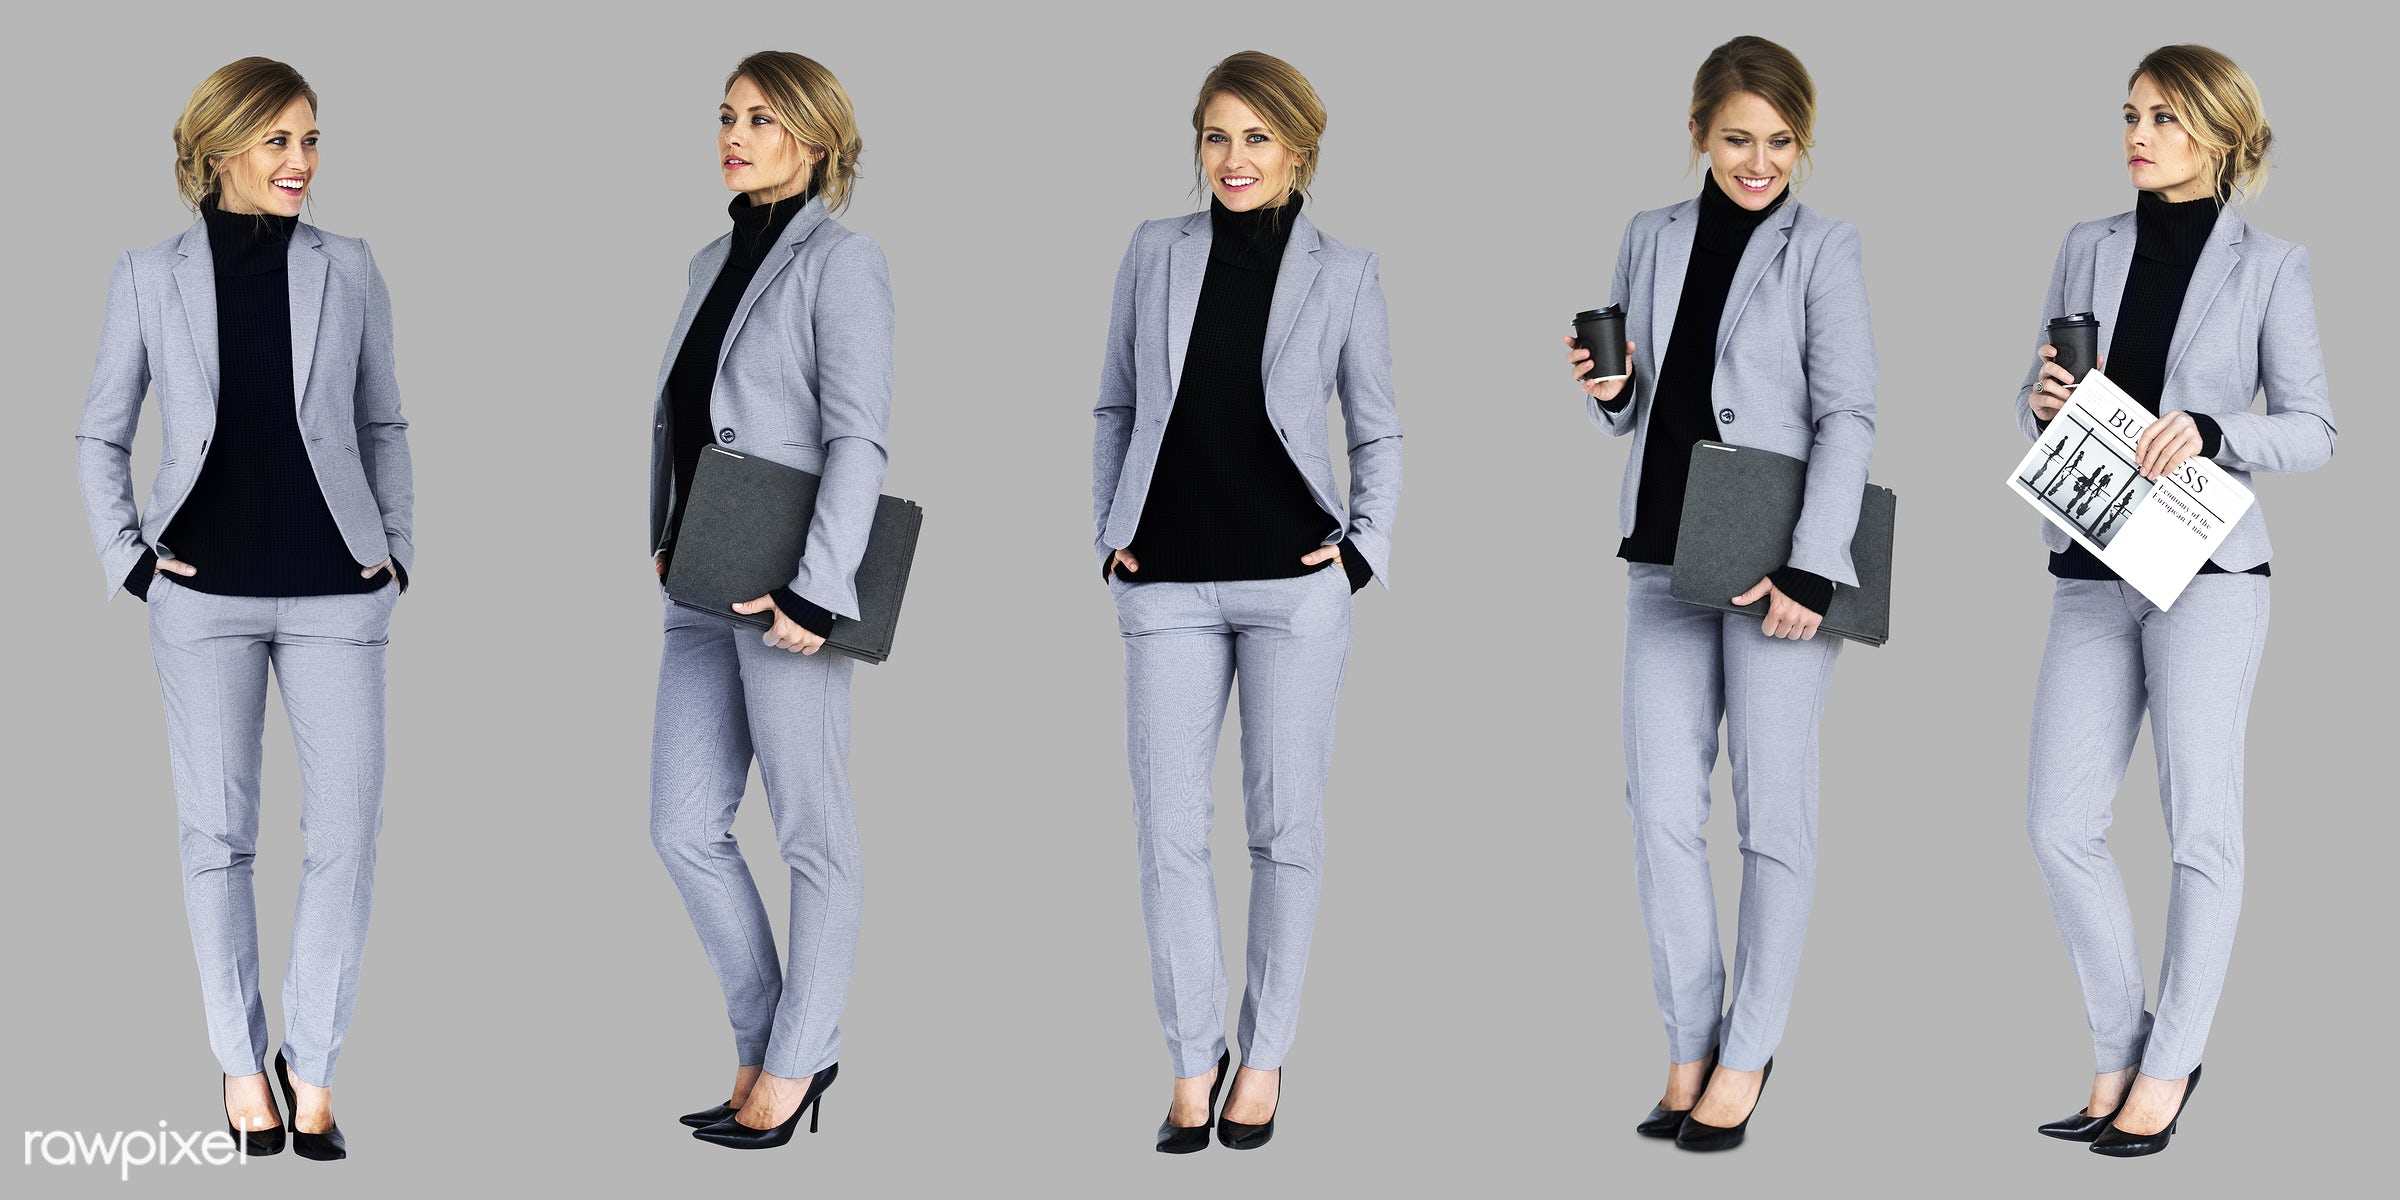 adult, assistant, attractive, background, business, businessperson, businesswoman, businesswomen, career, caucasian,...